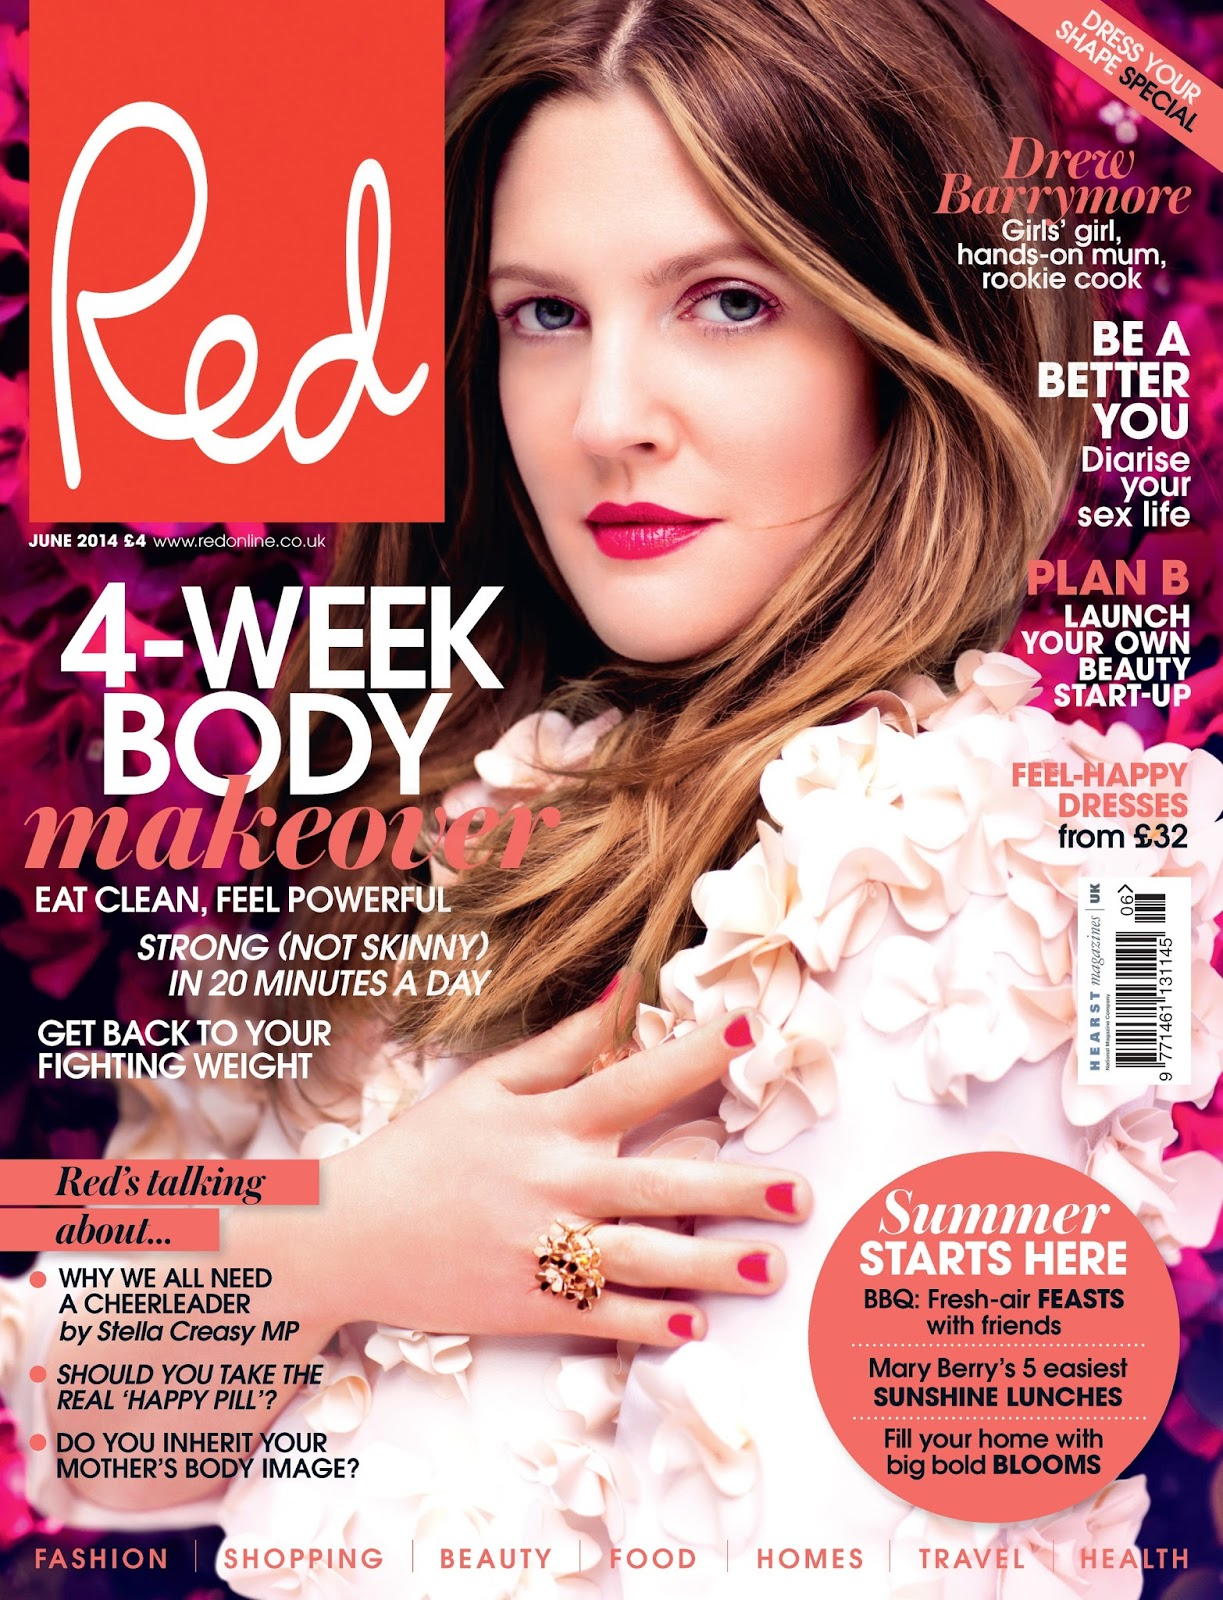 Drew Barrymore For Red Magazine  UK  June 2014Drew Barrymore 2014